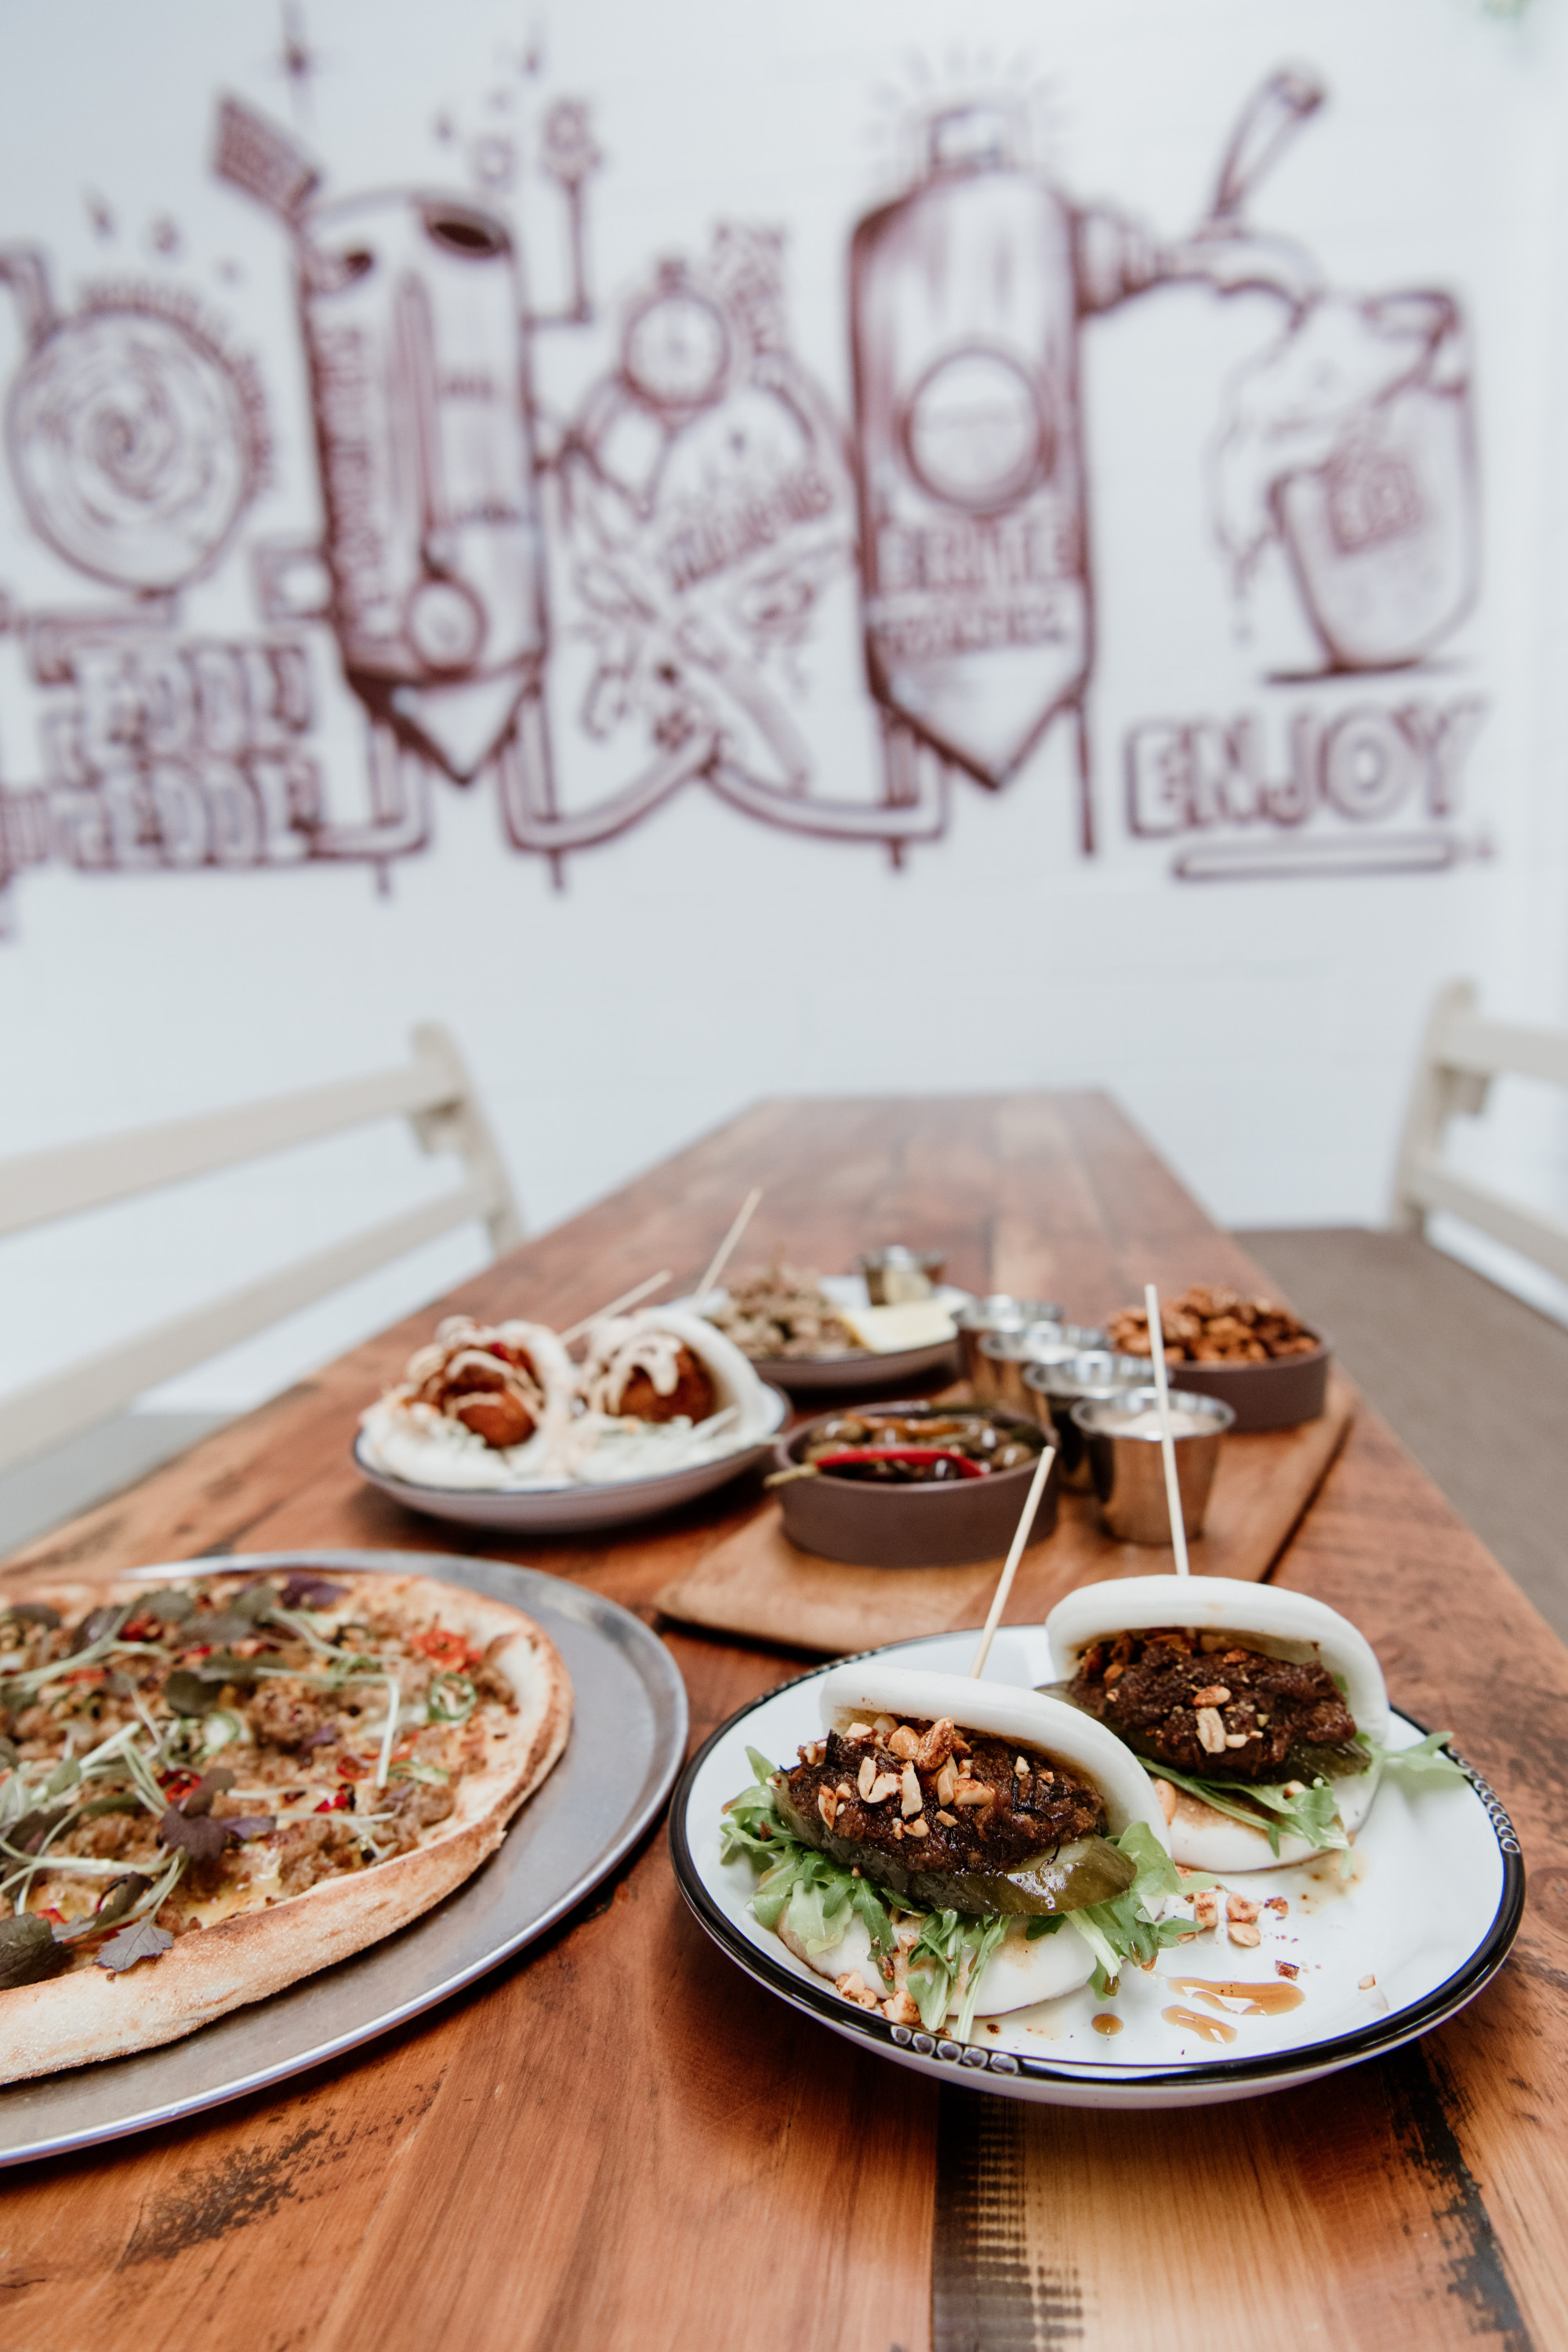 several dishes on a wooden table behind a mural